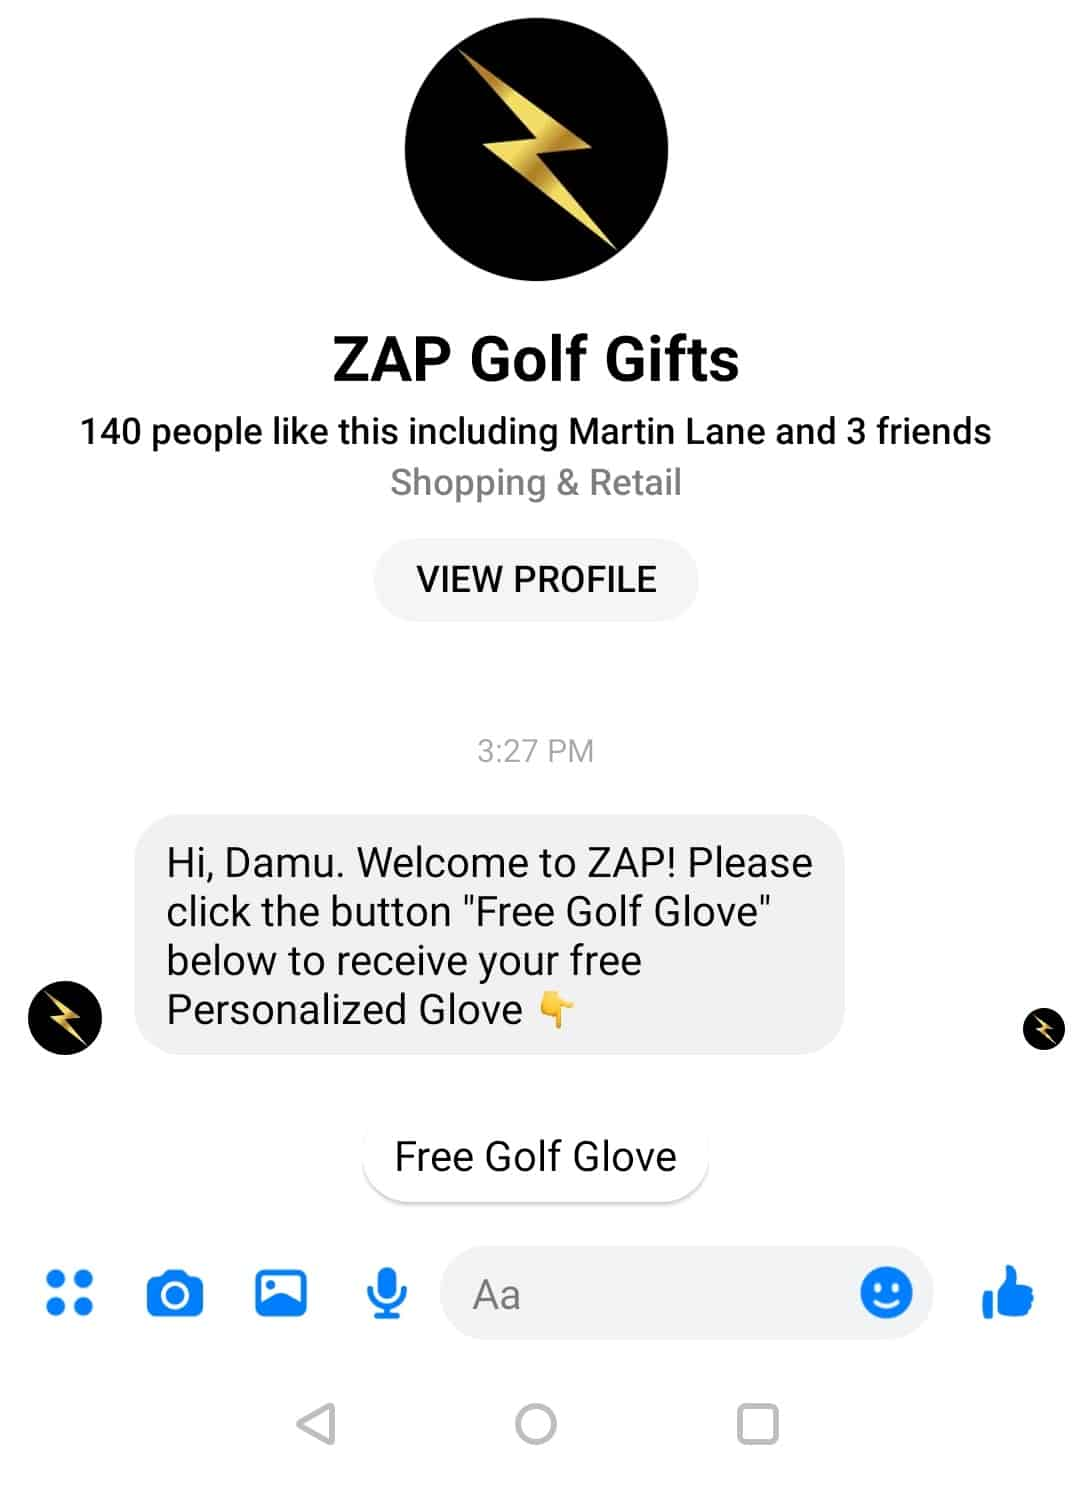 Messenger Conversation from the AD